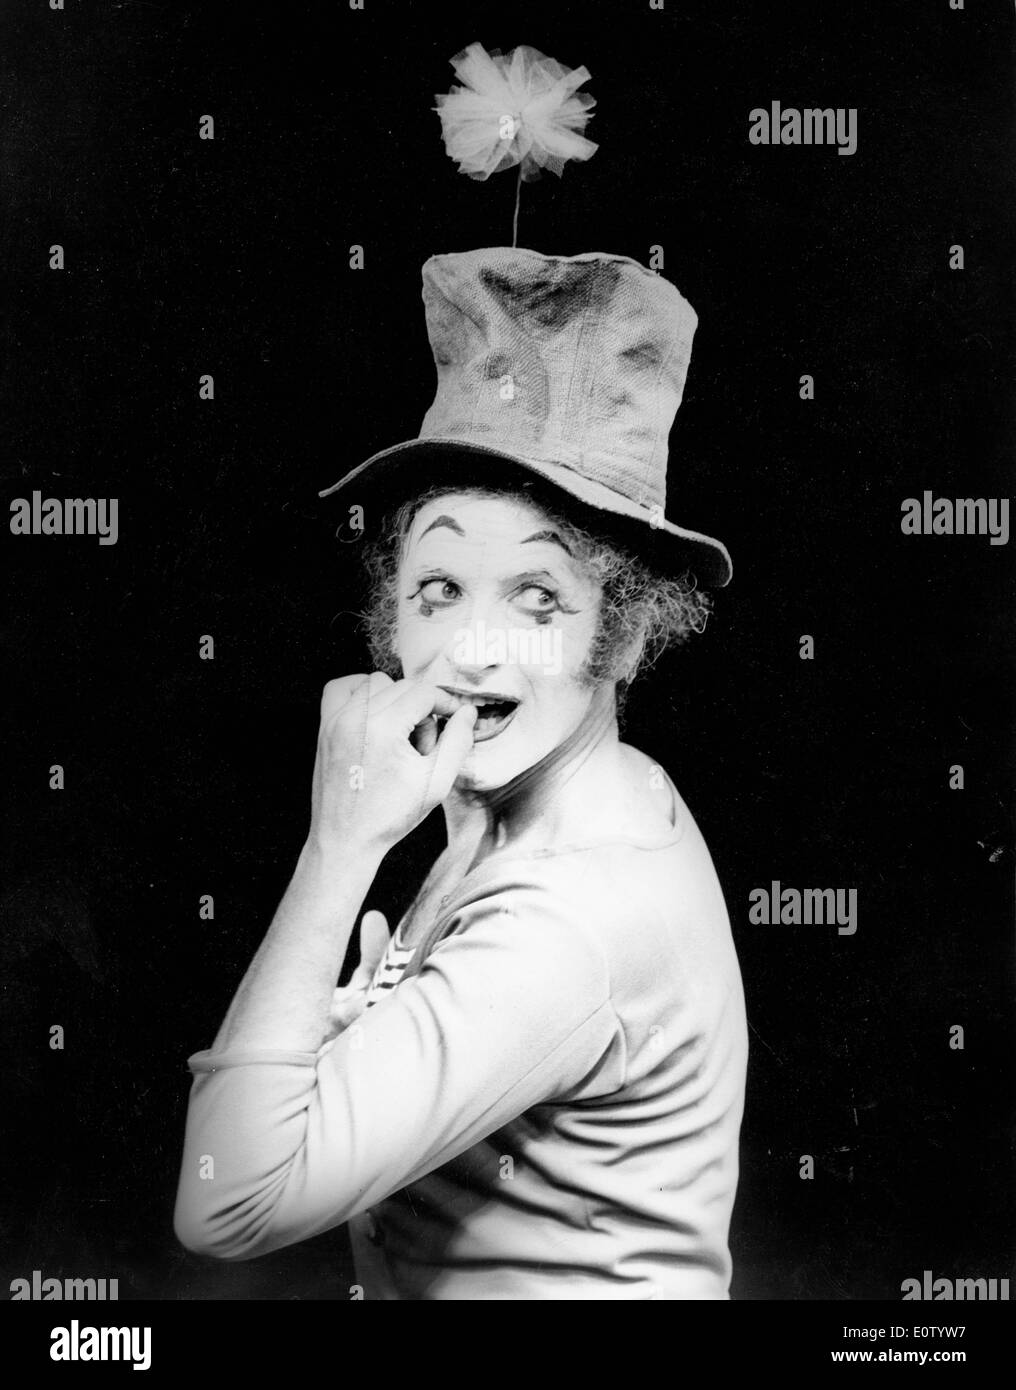 Marcel Marceau during a performance - Stock Image